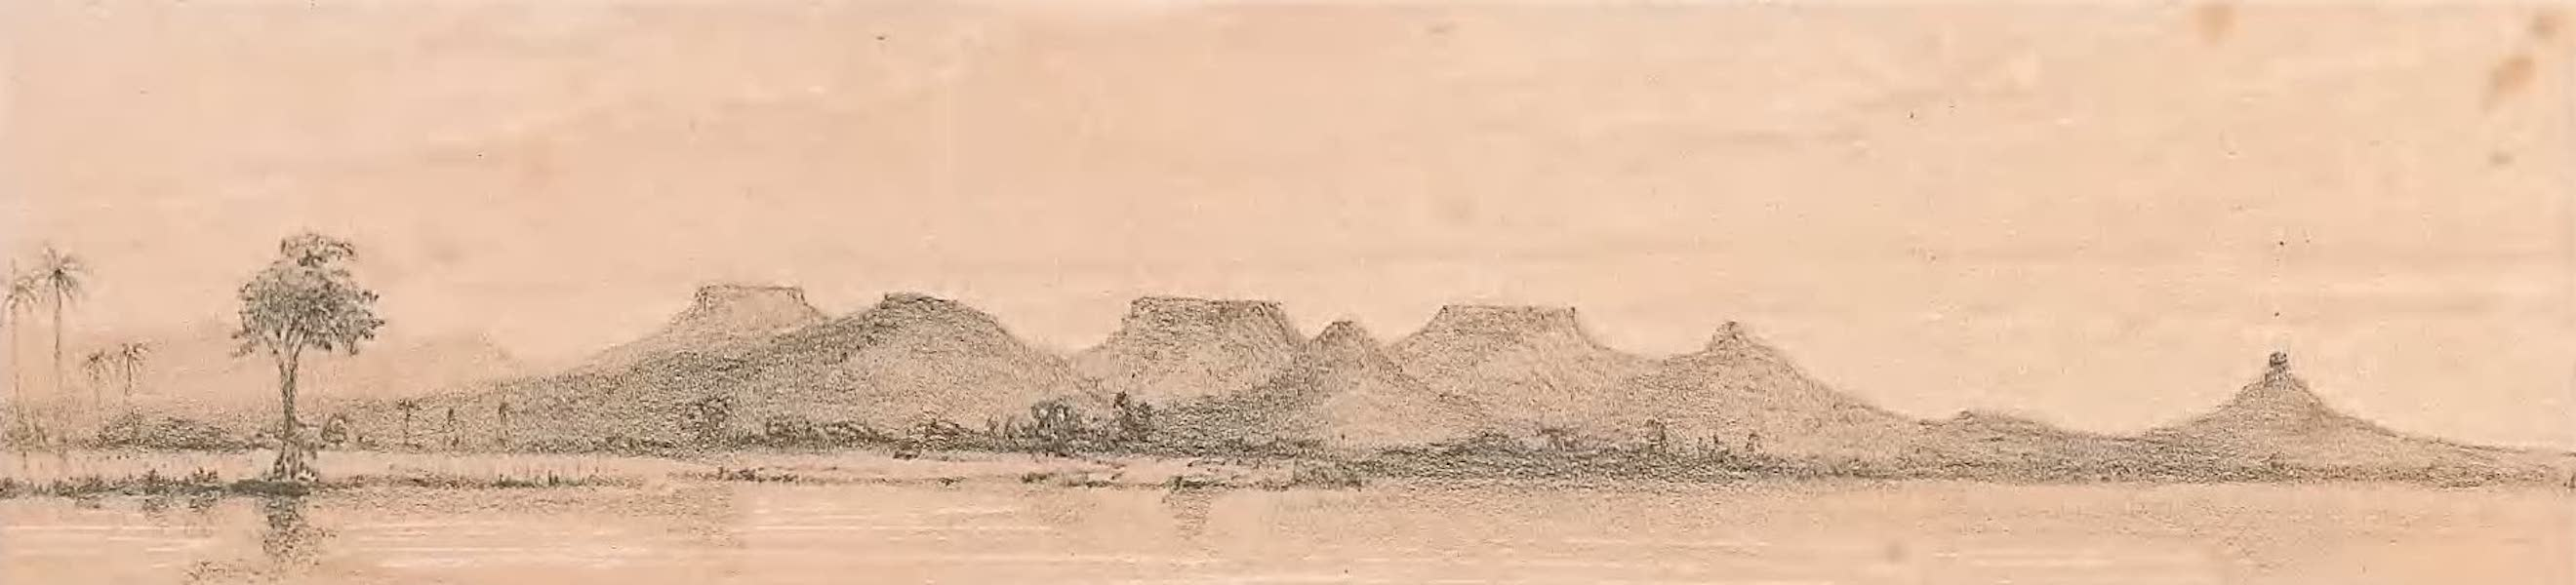 Picturesque Views on the River Niger - The Rennell Mountains (1840)